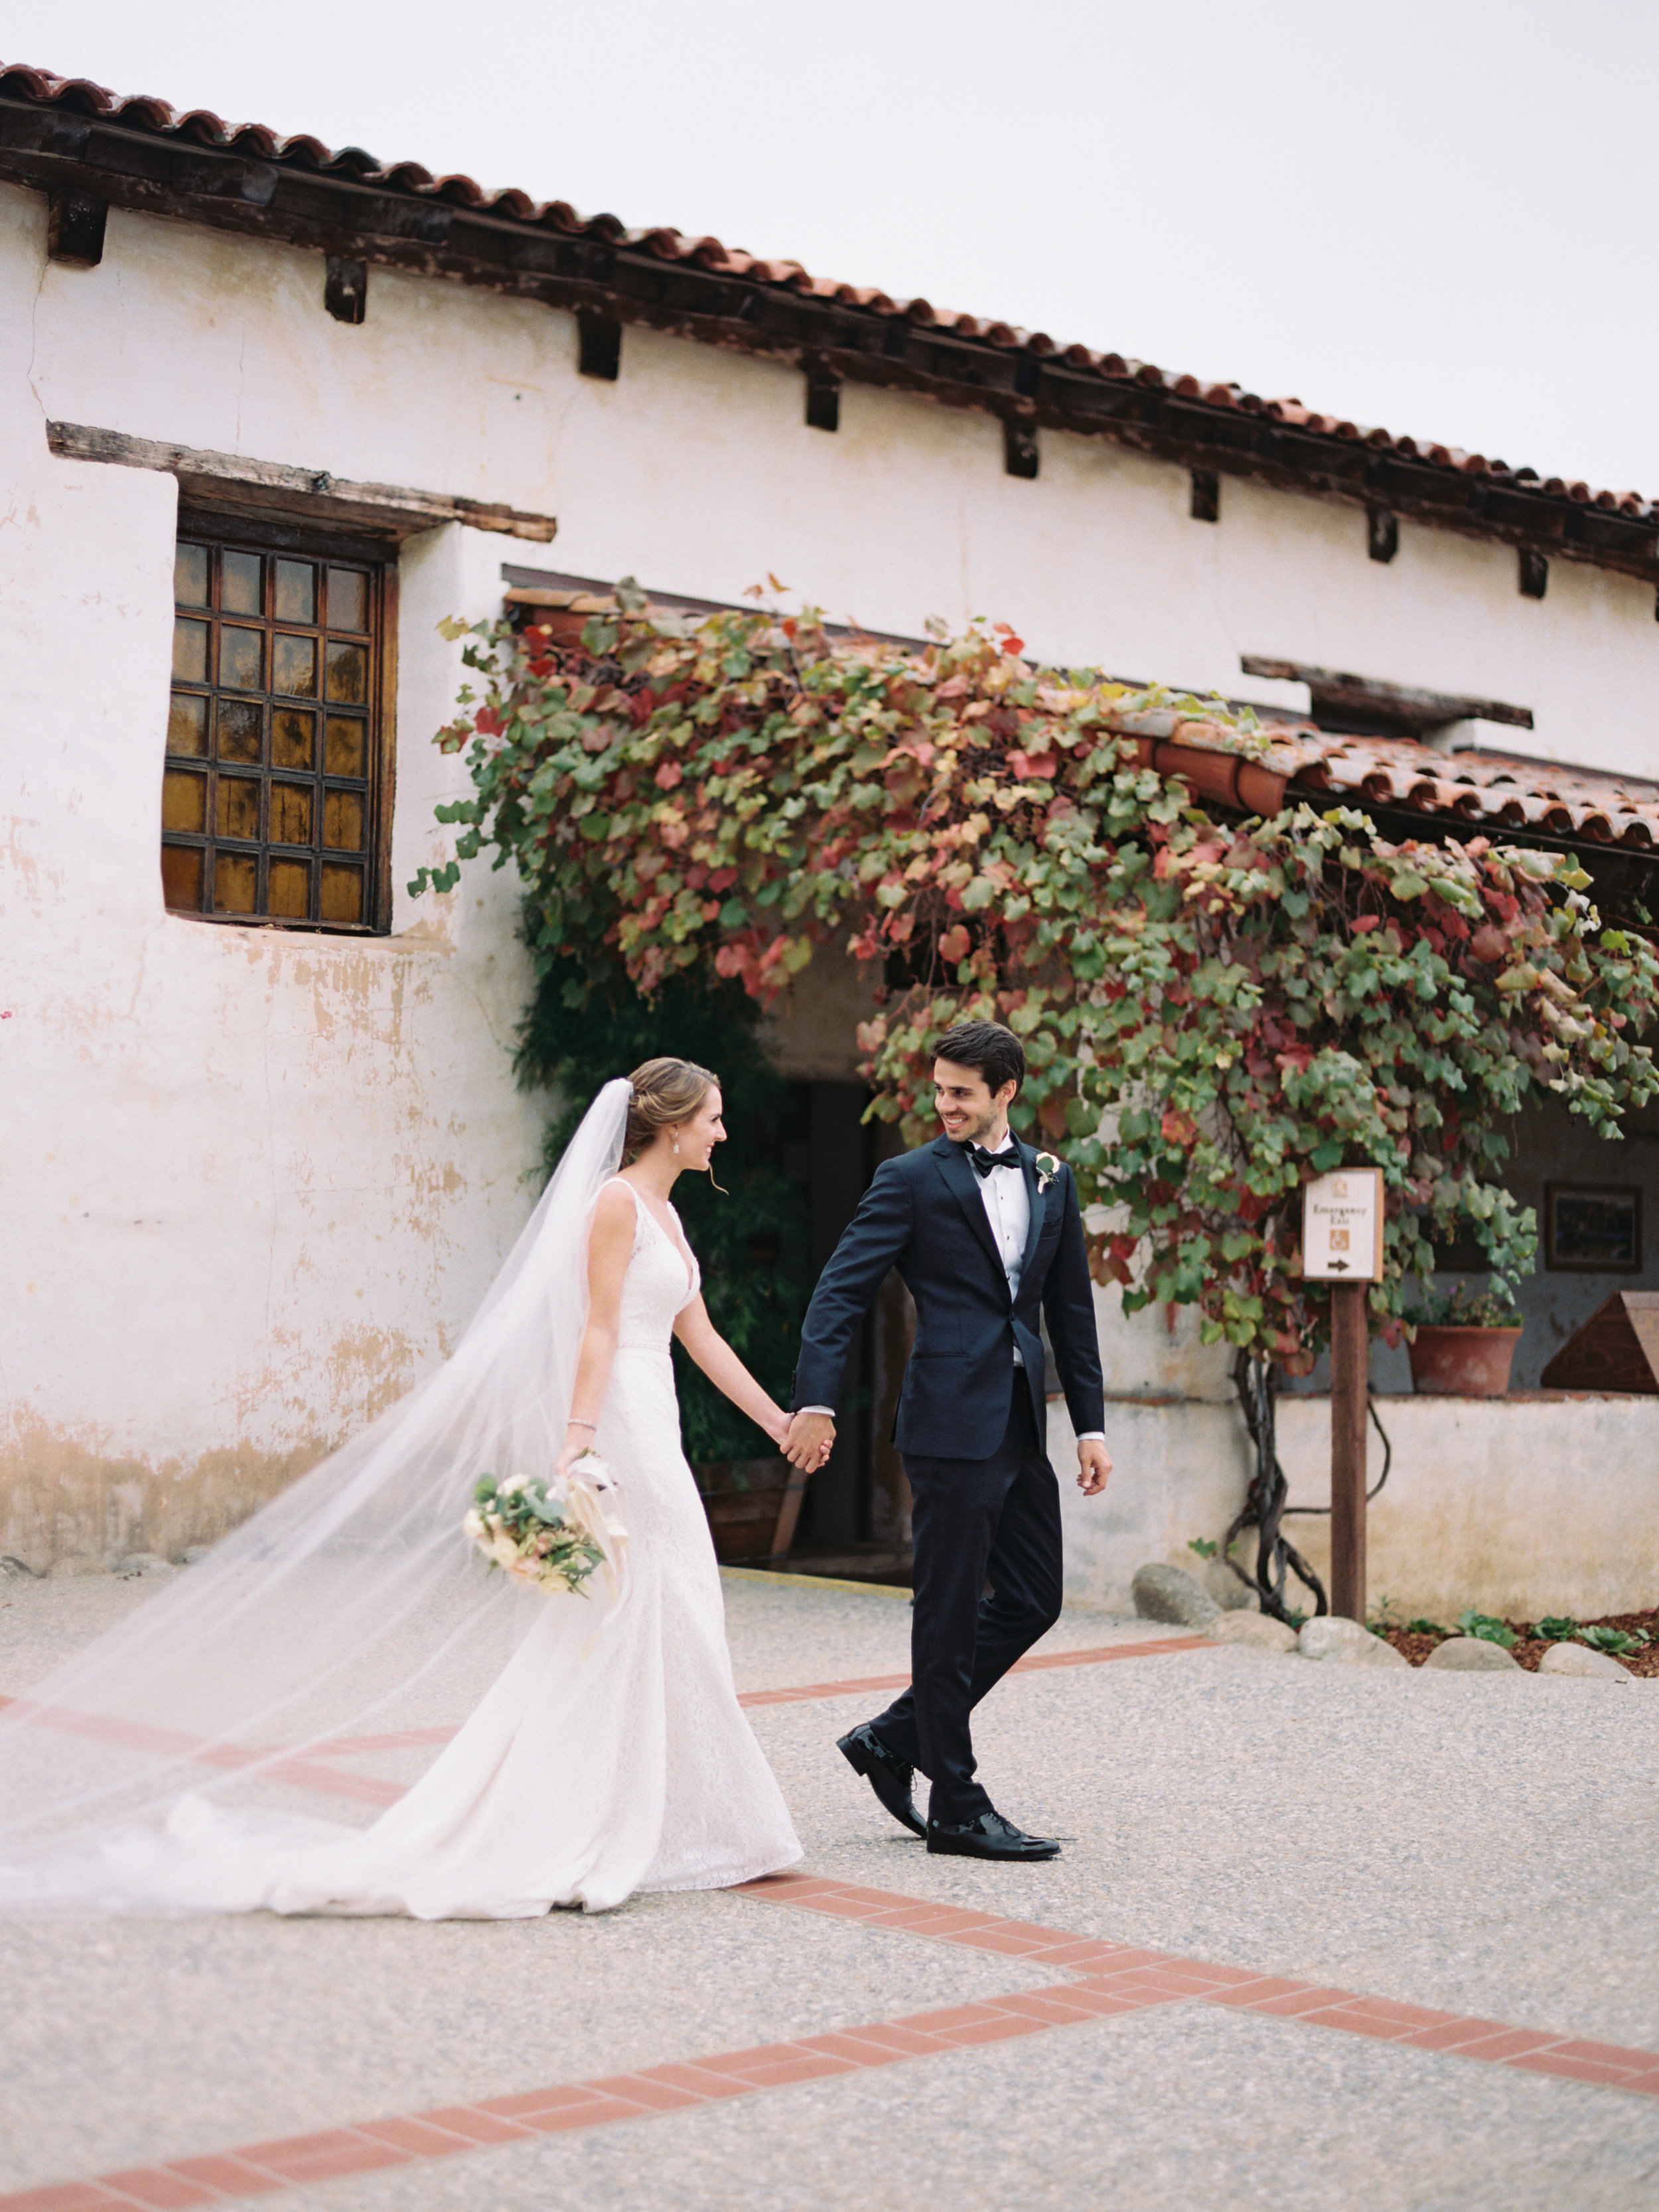 485-fine-art-film-photographer-carmel-california-destination-wedding-brumley-wells-tim-courtney.jpg